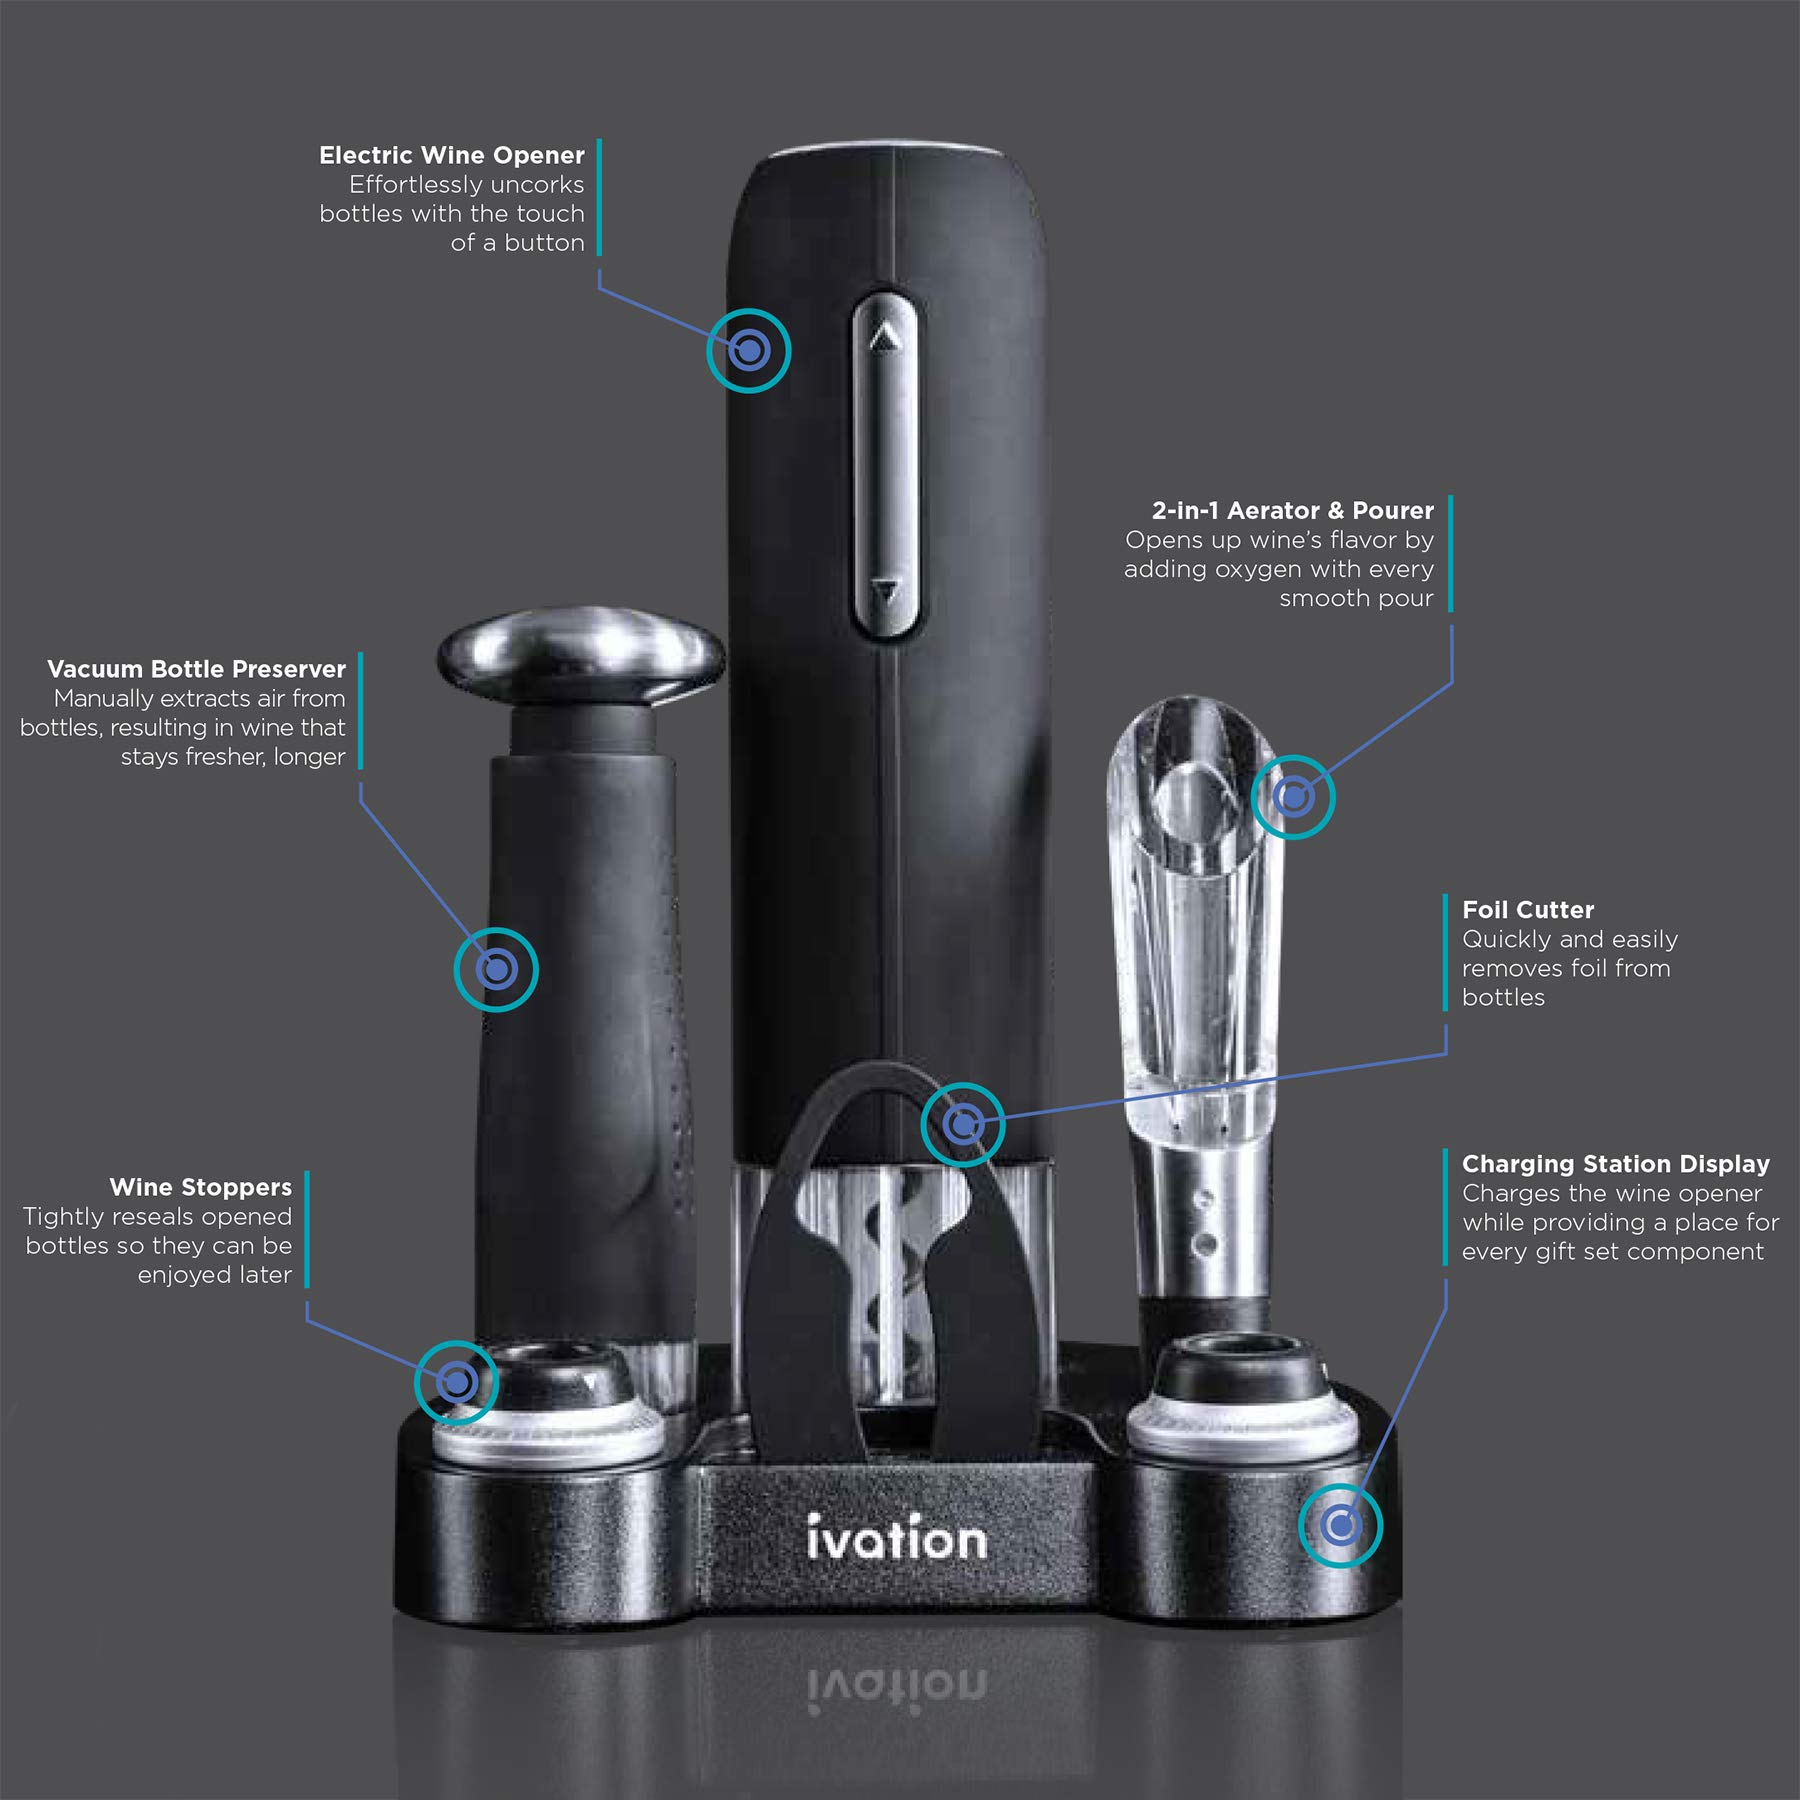 Ivation Wine Gift Set, Includes Electric Wine Bottle Opener, Wine Aerator, Vacuum Wine Preserver, 2 Bottle Stoppers, Foil Cutter & Charging Base by Ivation (Image #3)